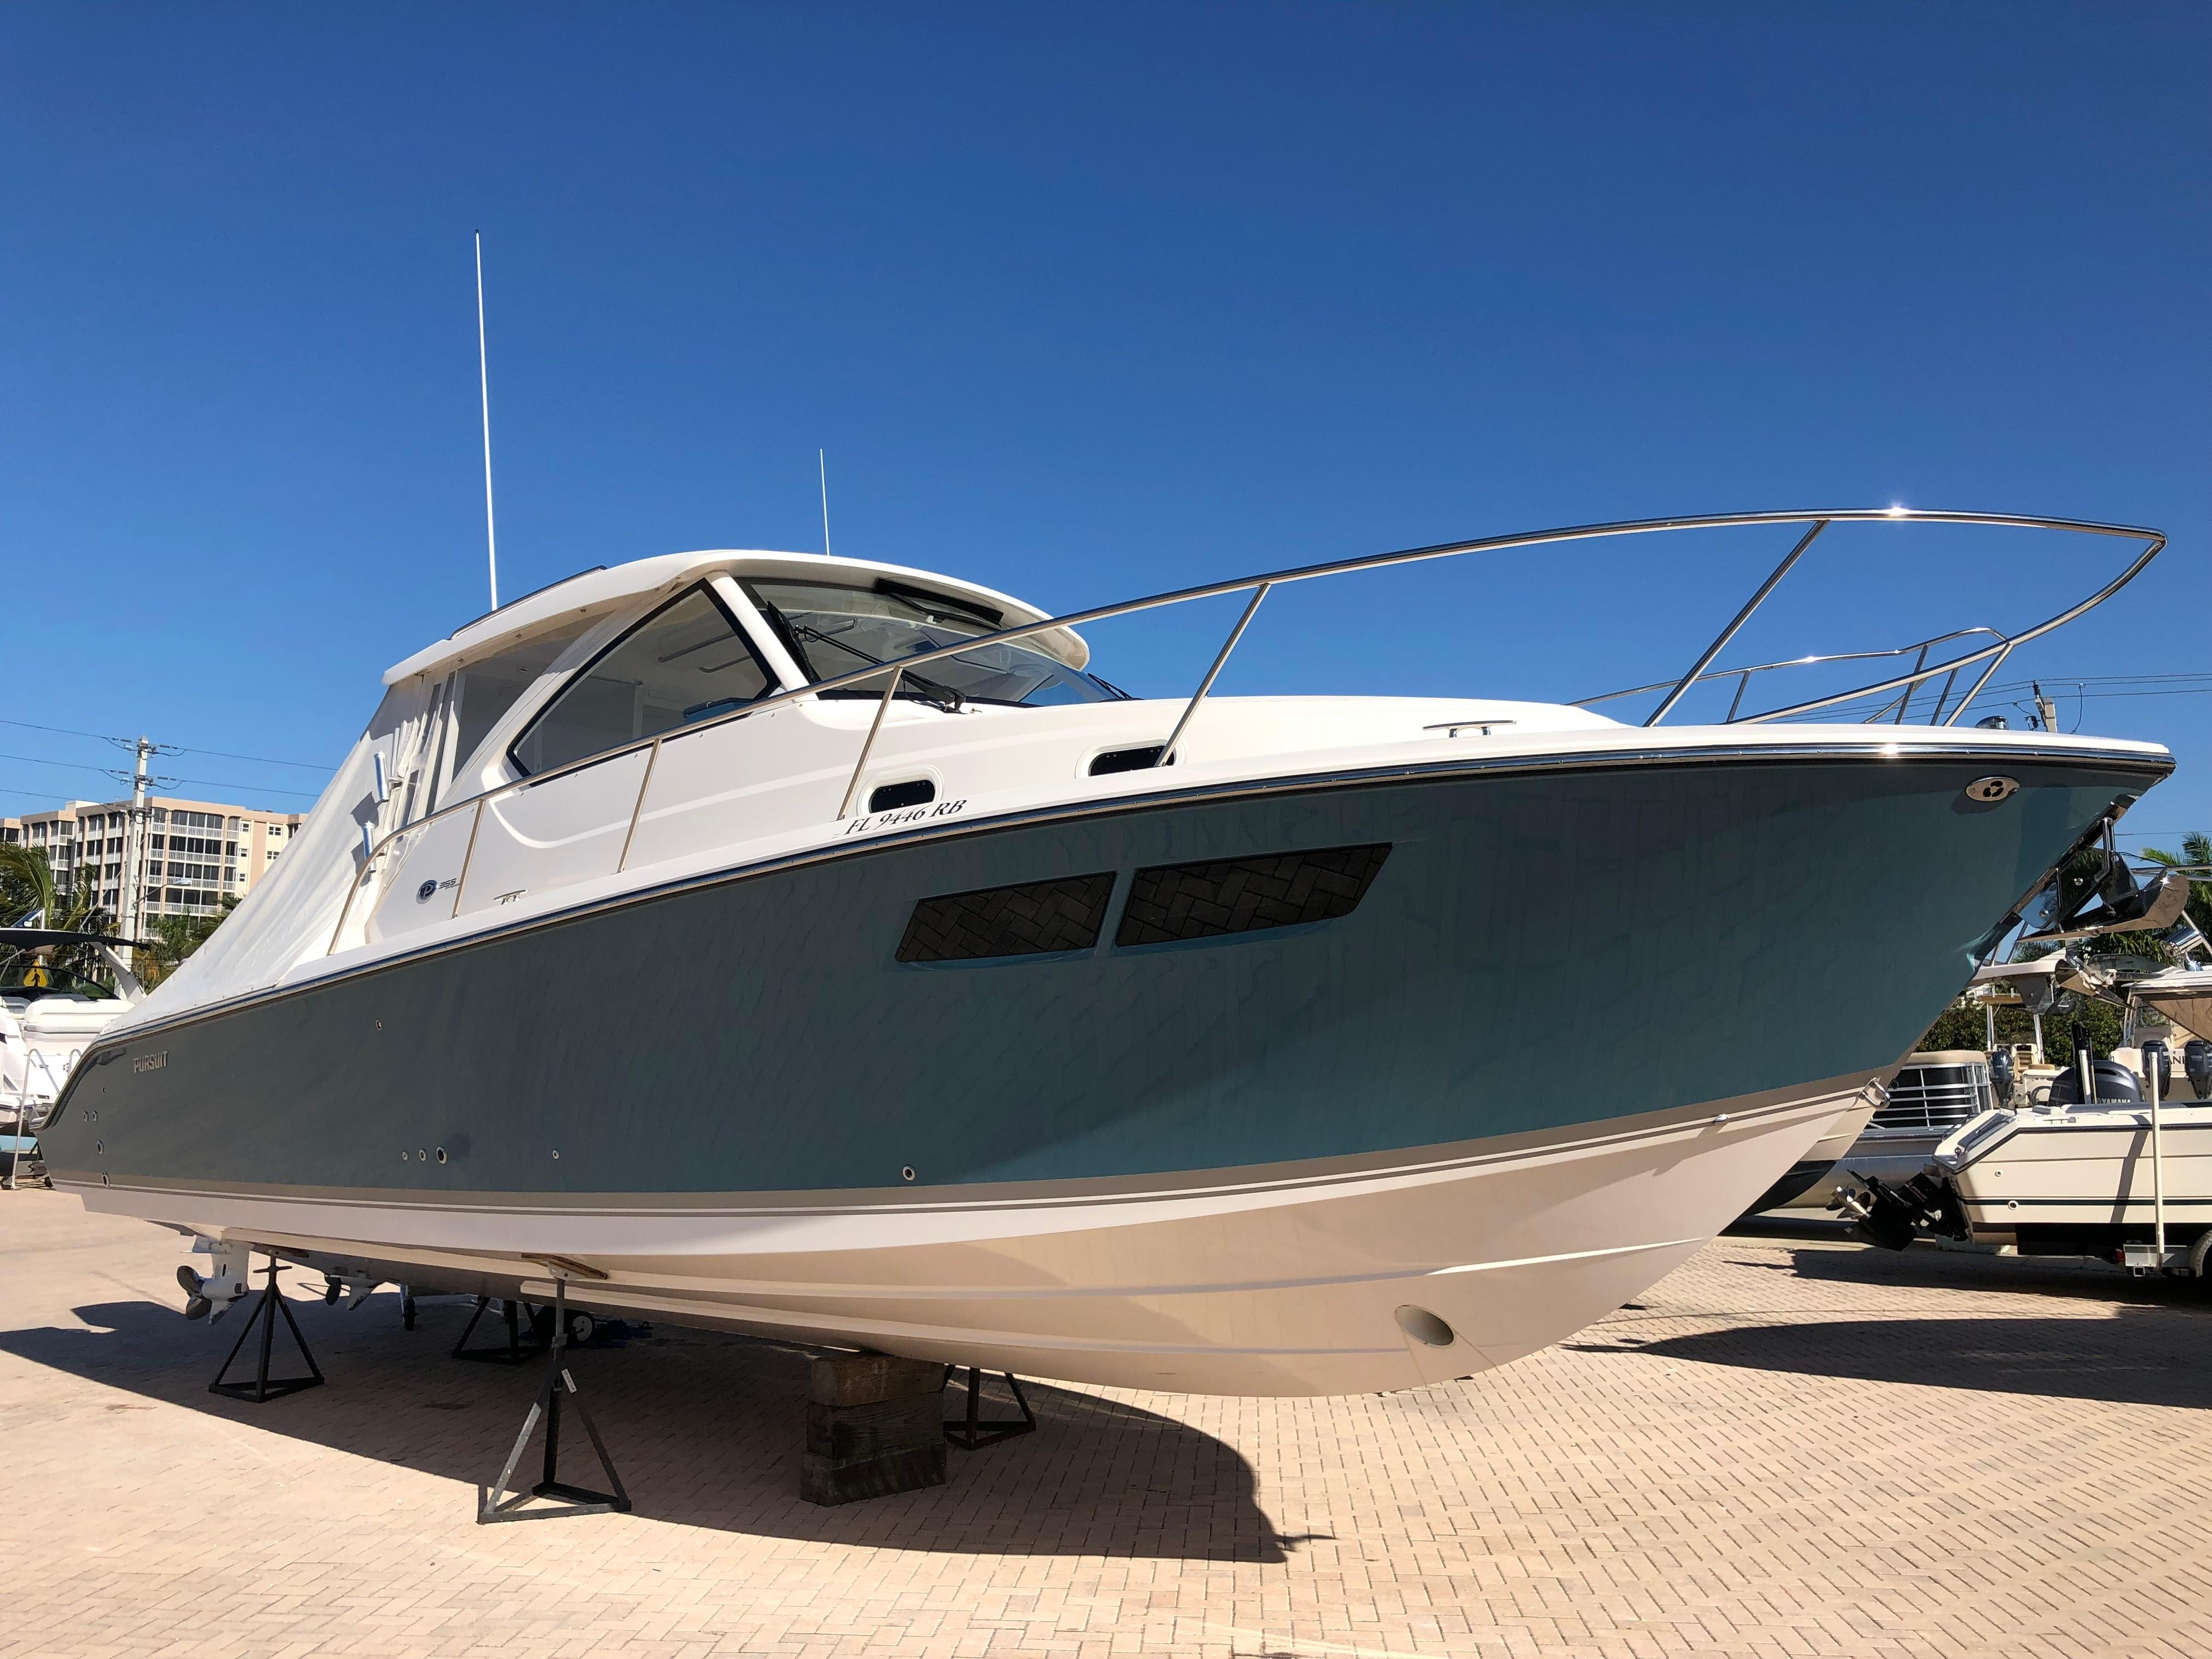 New & Used Boats for Sale in Marco Island, Naples, & Fort Myers, FL